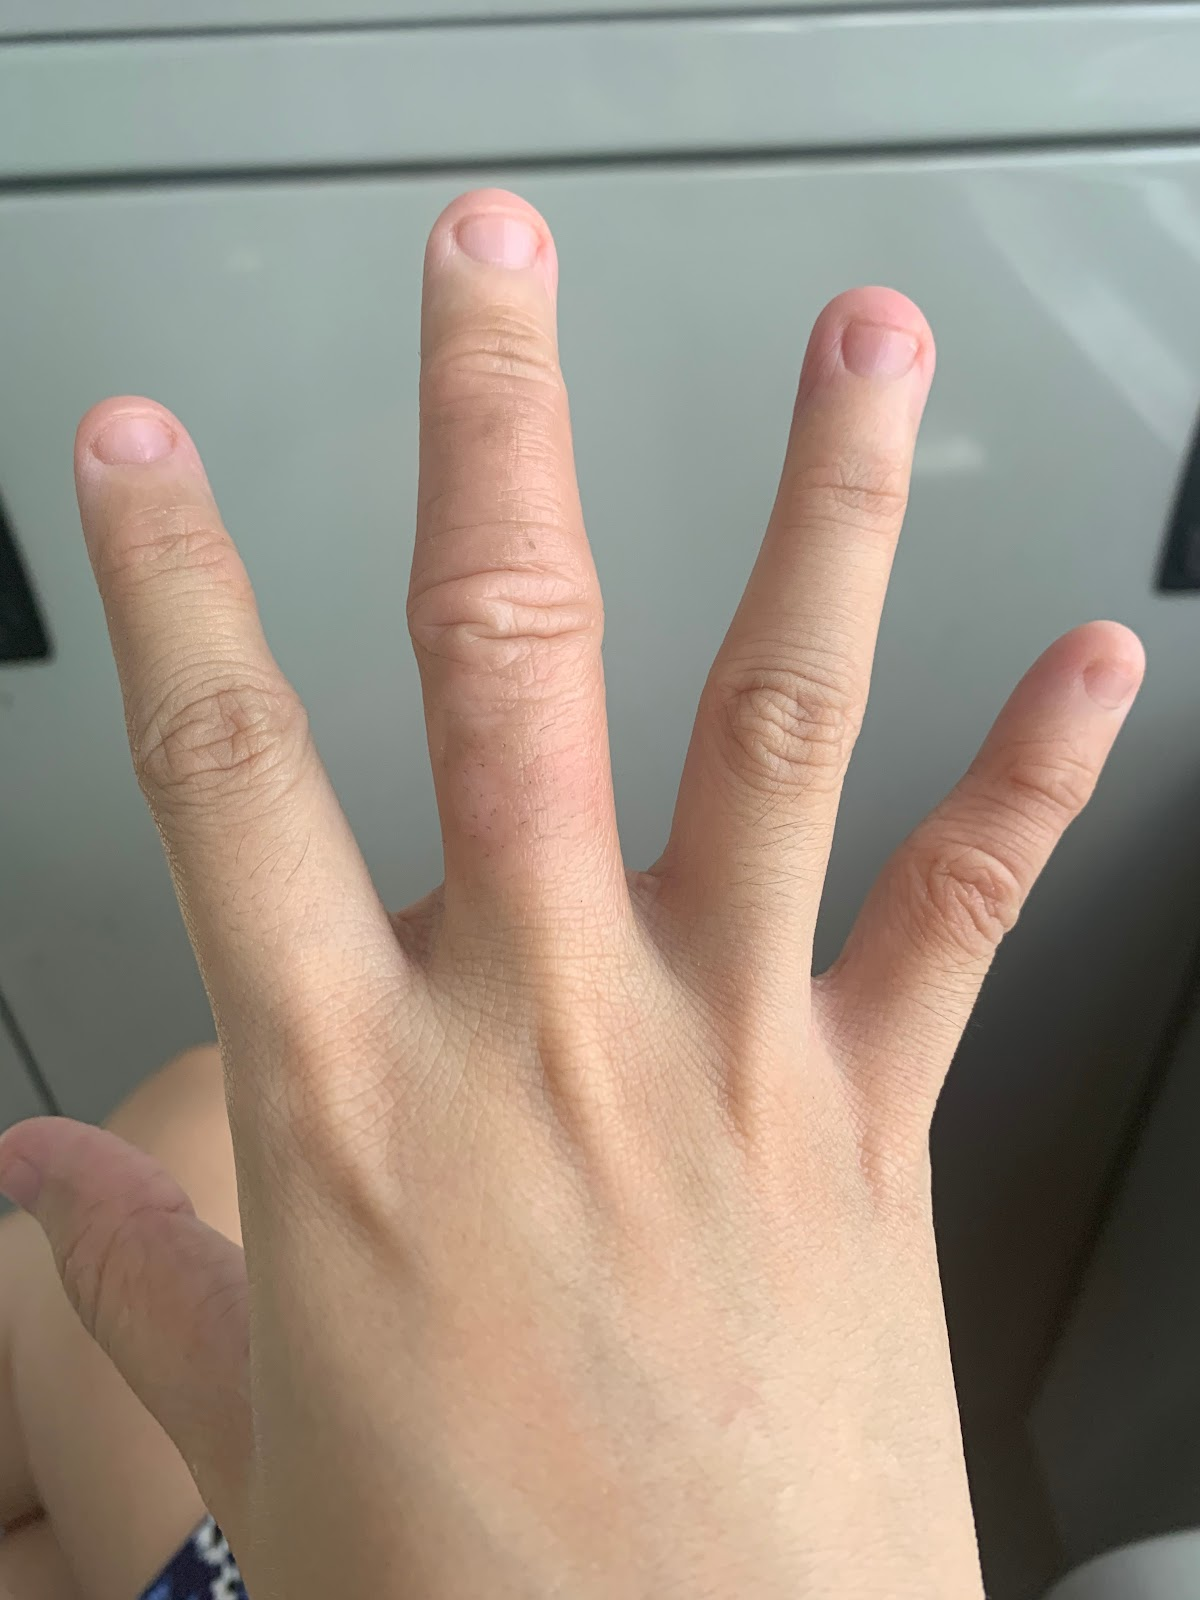 Closer view of improved skin on fingers after emu oil